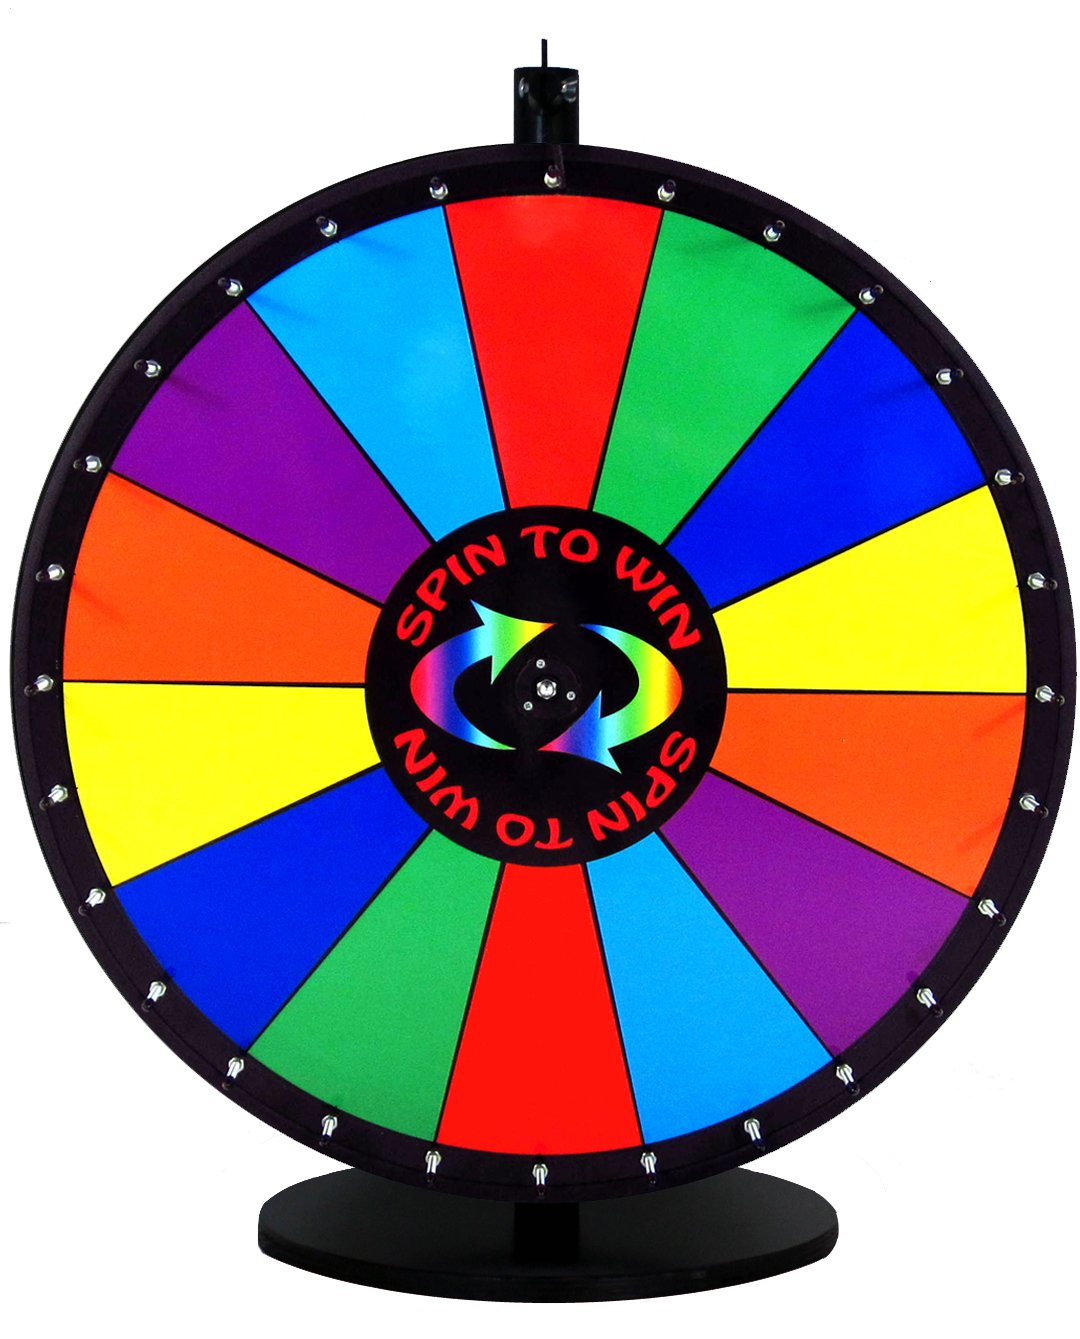 36 Inch Quality Spin to Win Dry Erase Prize Wheel